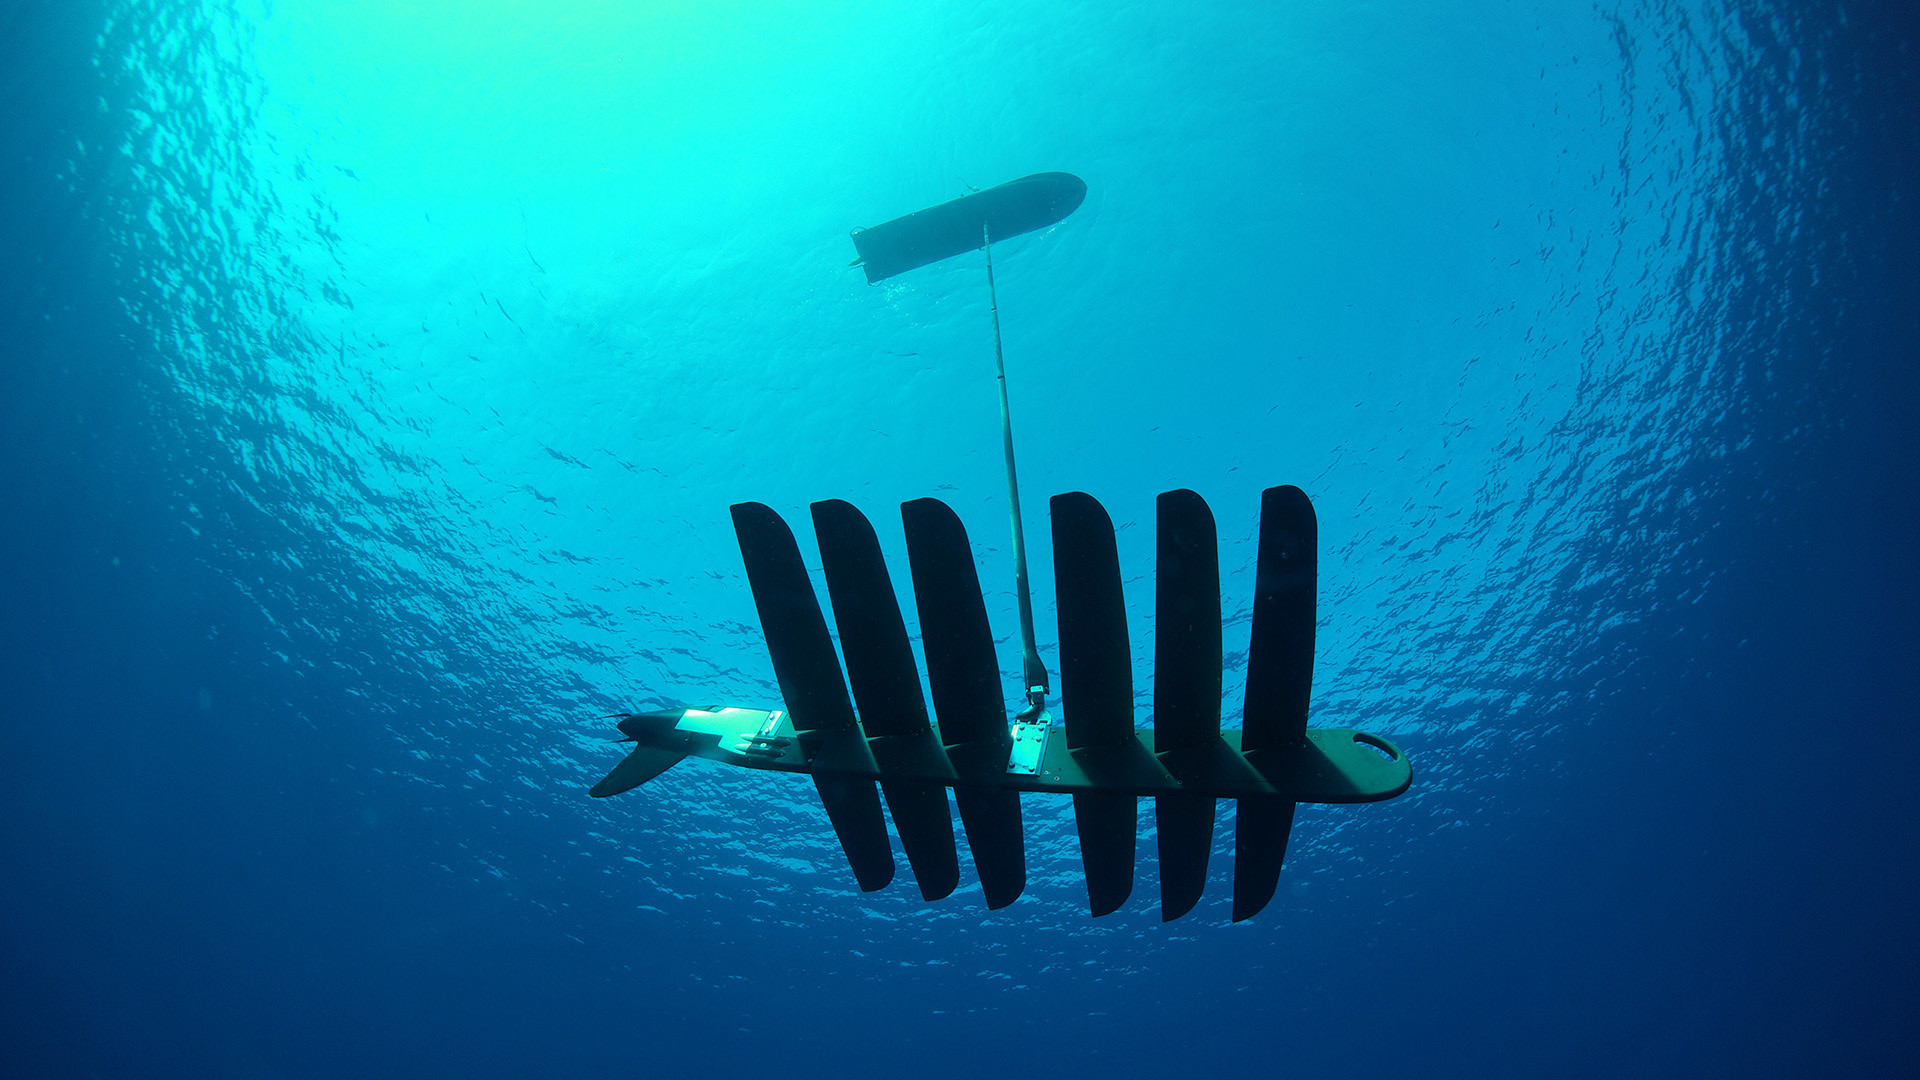 The Wave Glider: This unmanned craft uses wave energy to collect and share ocean data